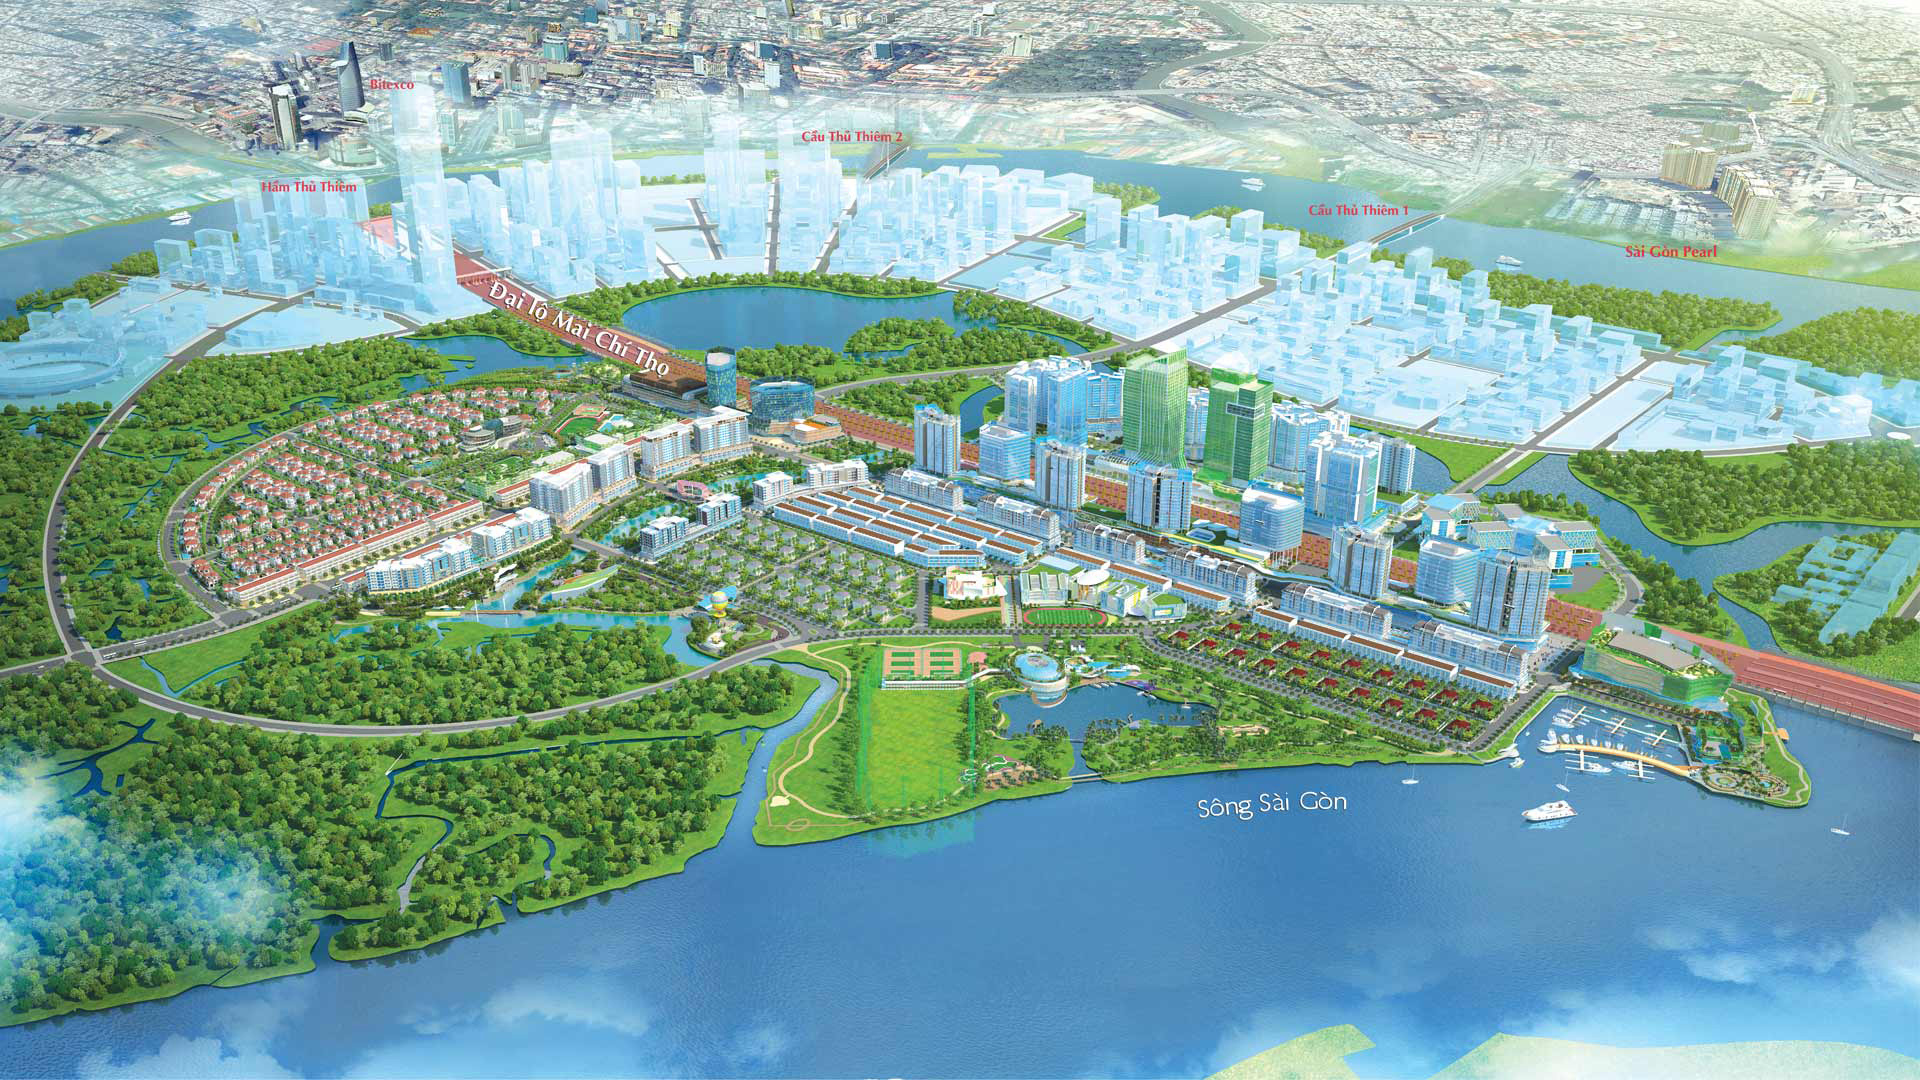 SRDC Project - Dai Quang Minh